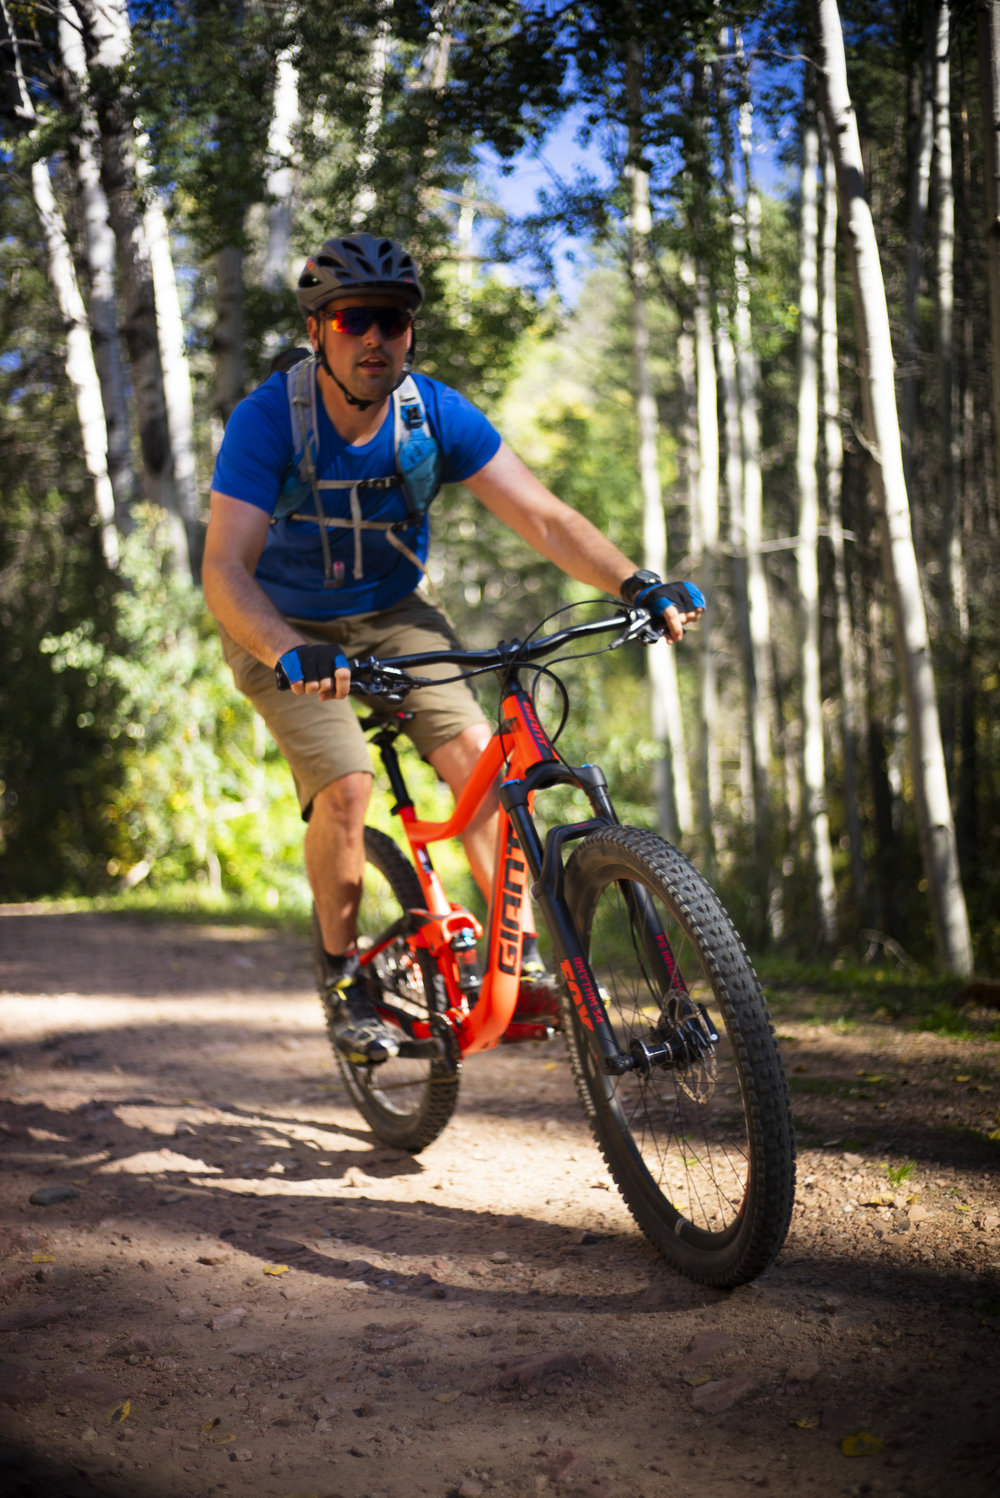 201809_SANTAFE_BIKING_003.jpg